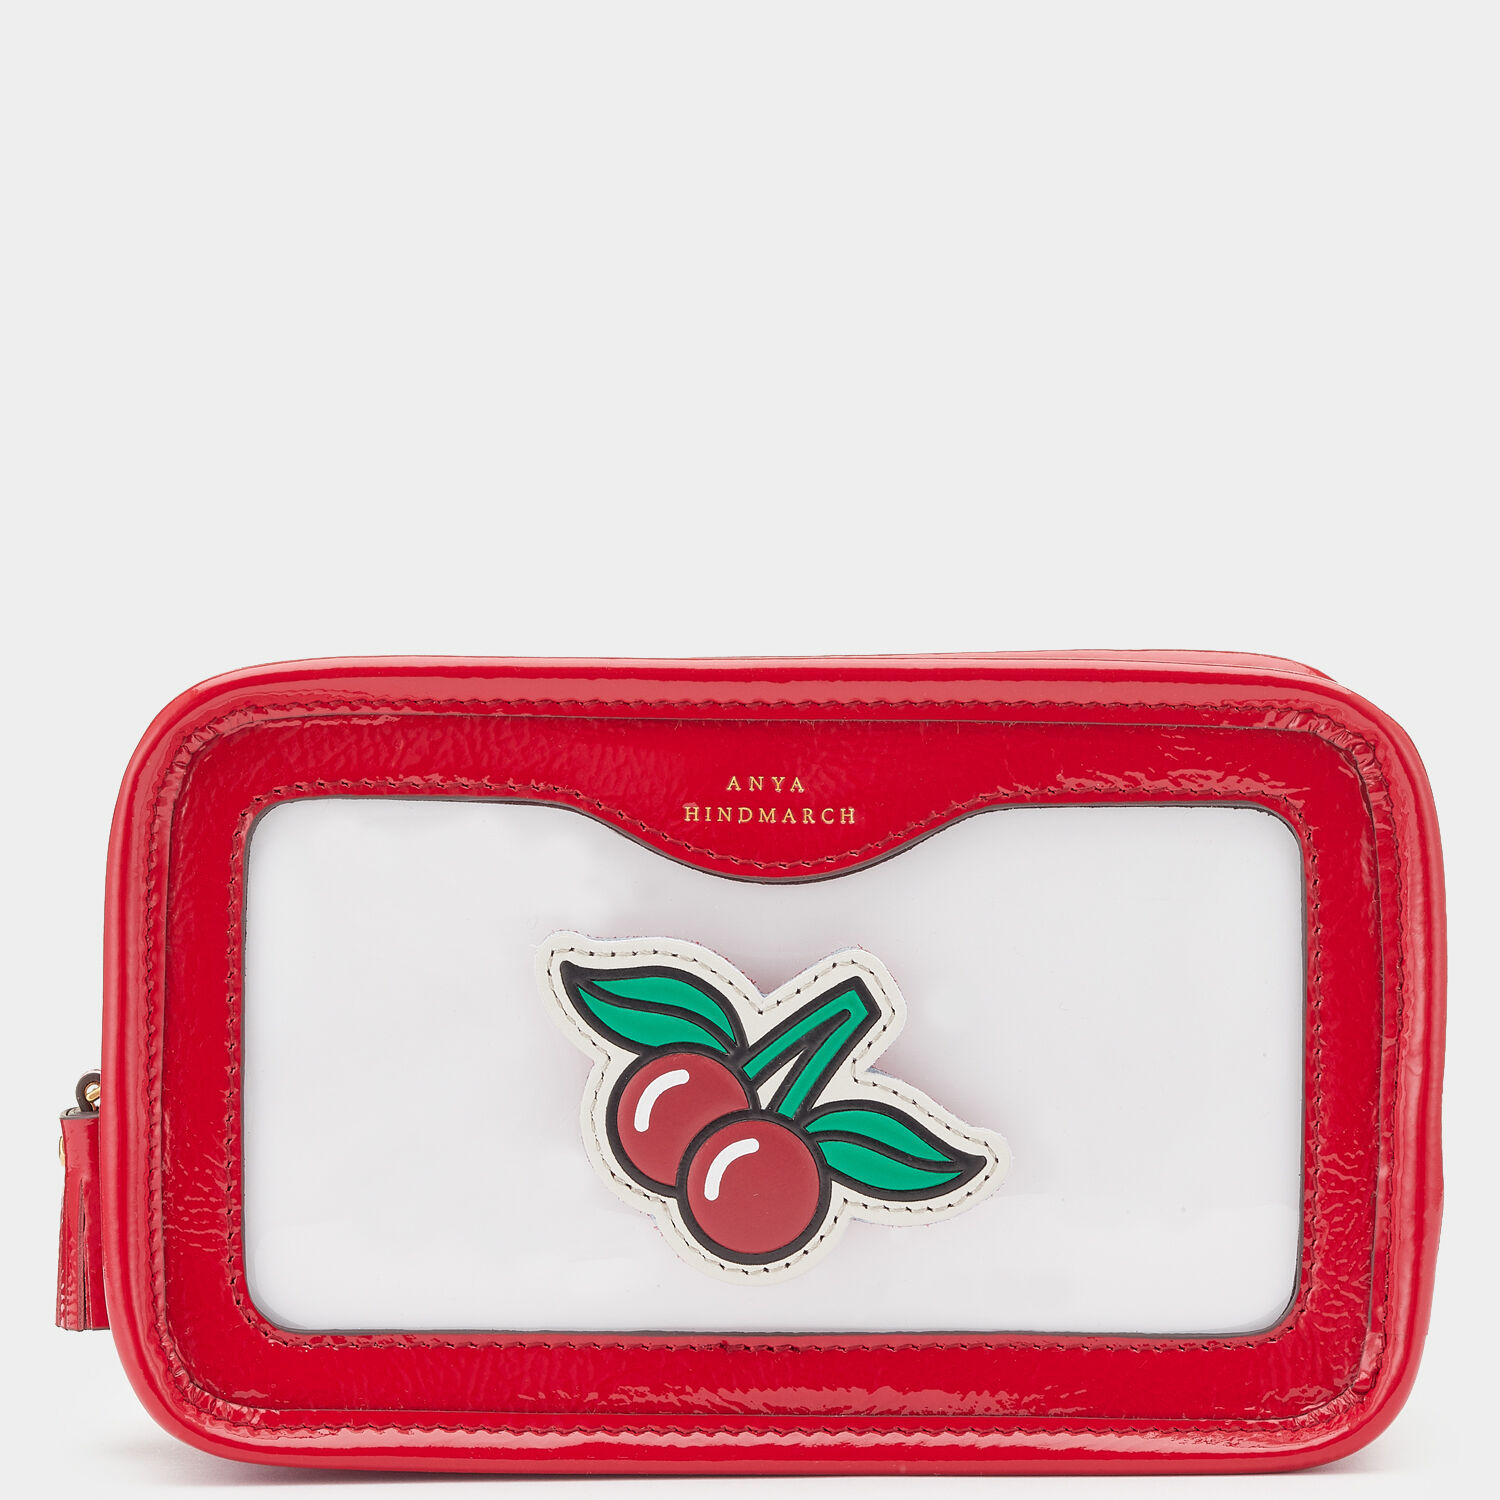 Cherries Rainy Day Make-Up Pouch by Anya Hindmarch